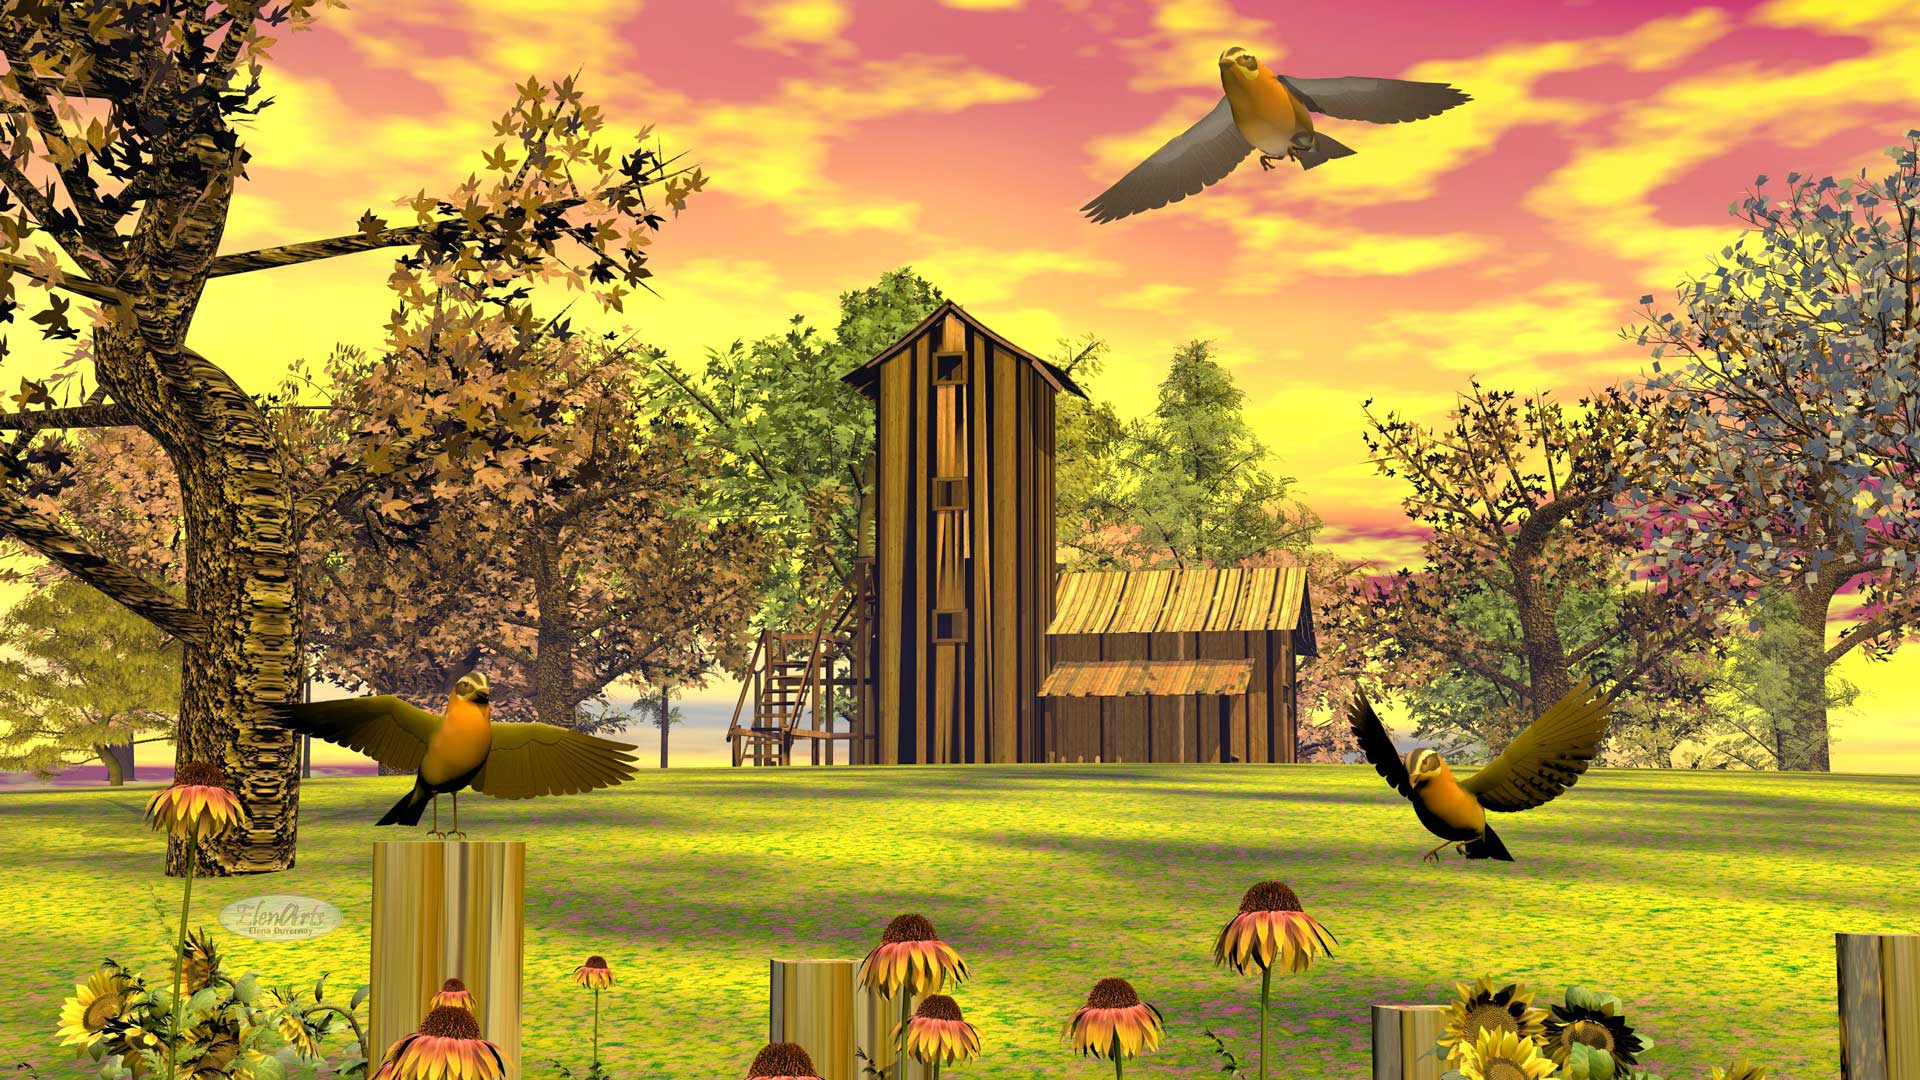 Farm house, trees flowers, grass and birds in autumn sunset landscape